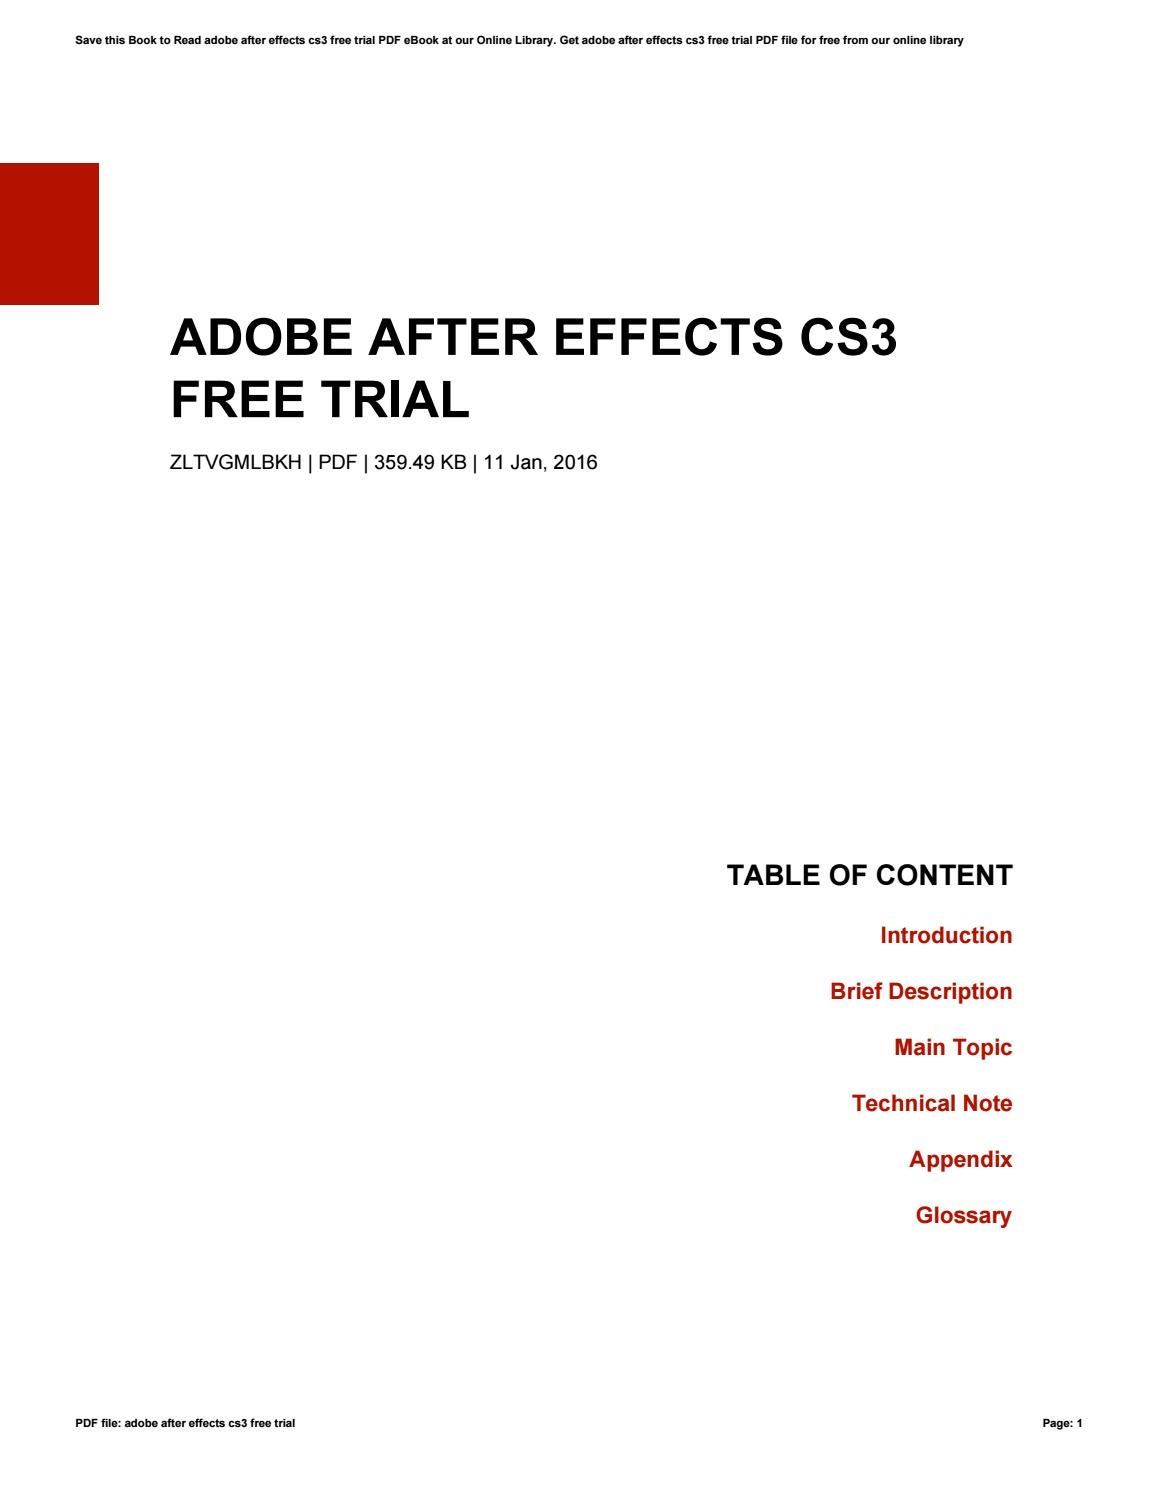 Adobe after effects cs3 free trial by VictoriaMagness3383